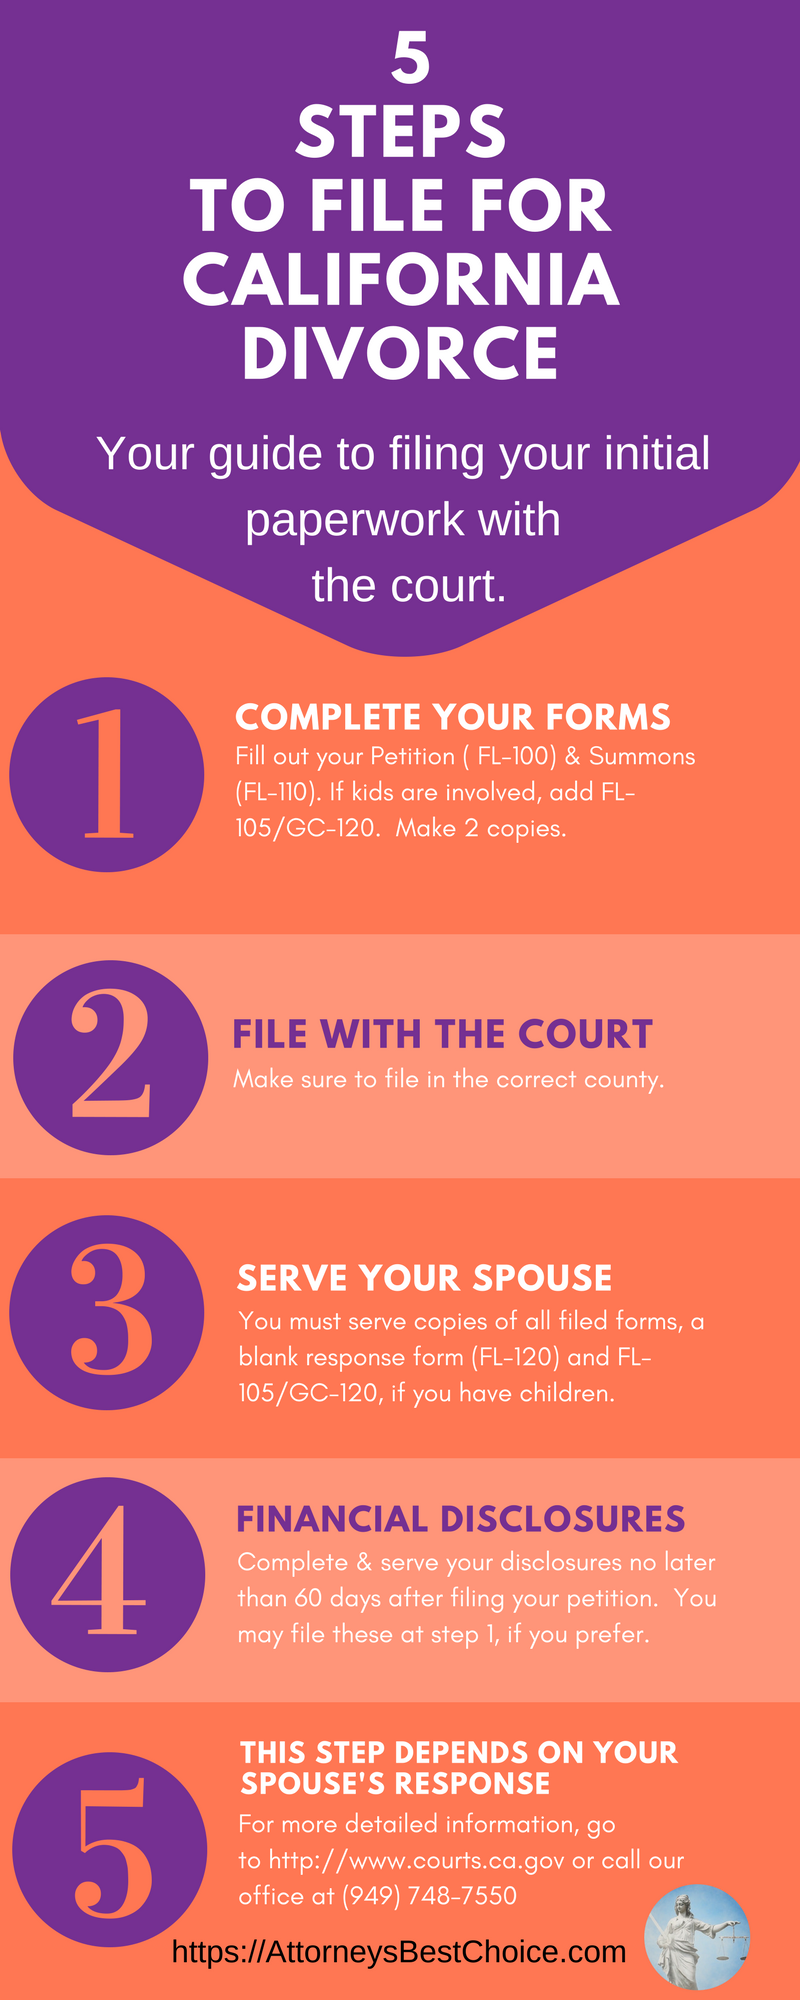 What Are The First 5 Steps In The Divorce Process This Quick Guide Will Help You File Your Initial Divorce Papers Befo Divorce Divorce Help Divorce Advice